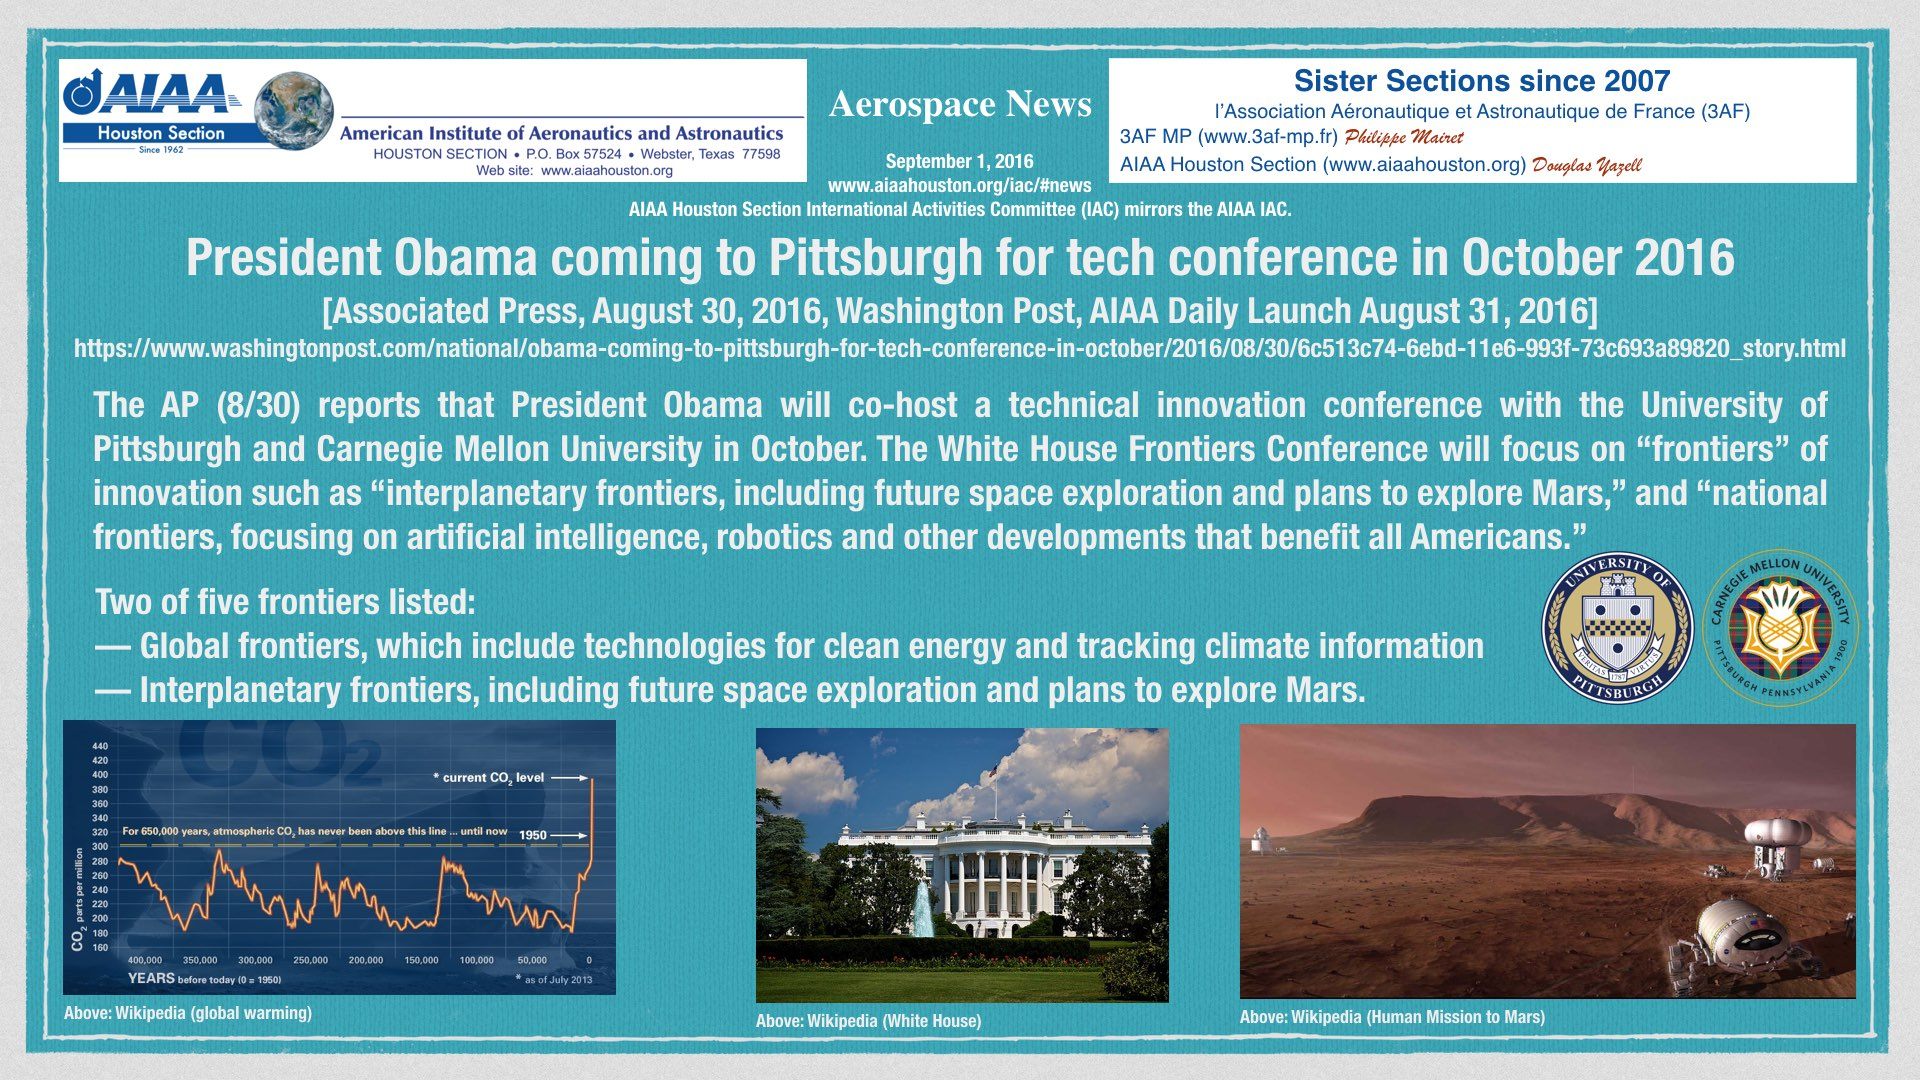 Above: President Obama coming to Pittsburgh for tech conference in October 2016. (Click to zoom.)